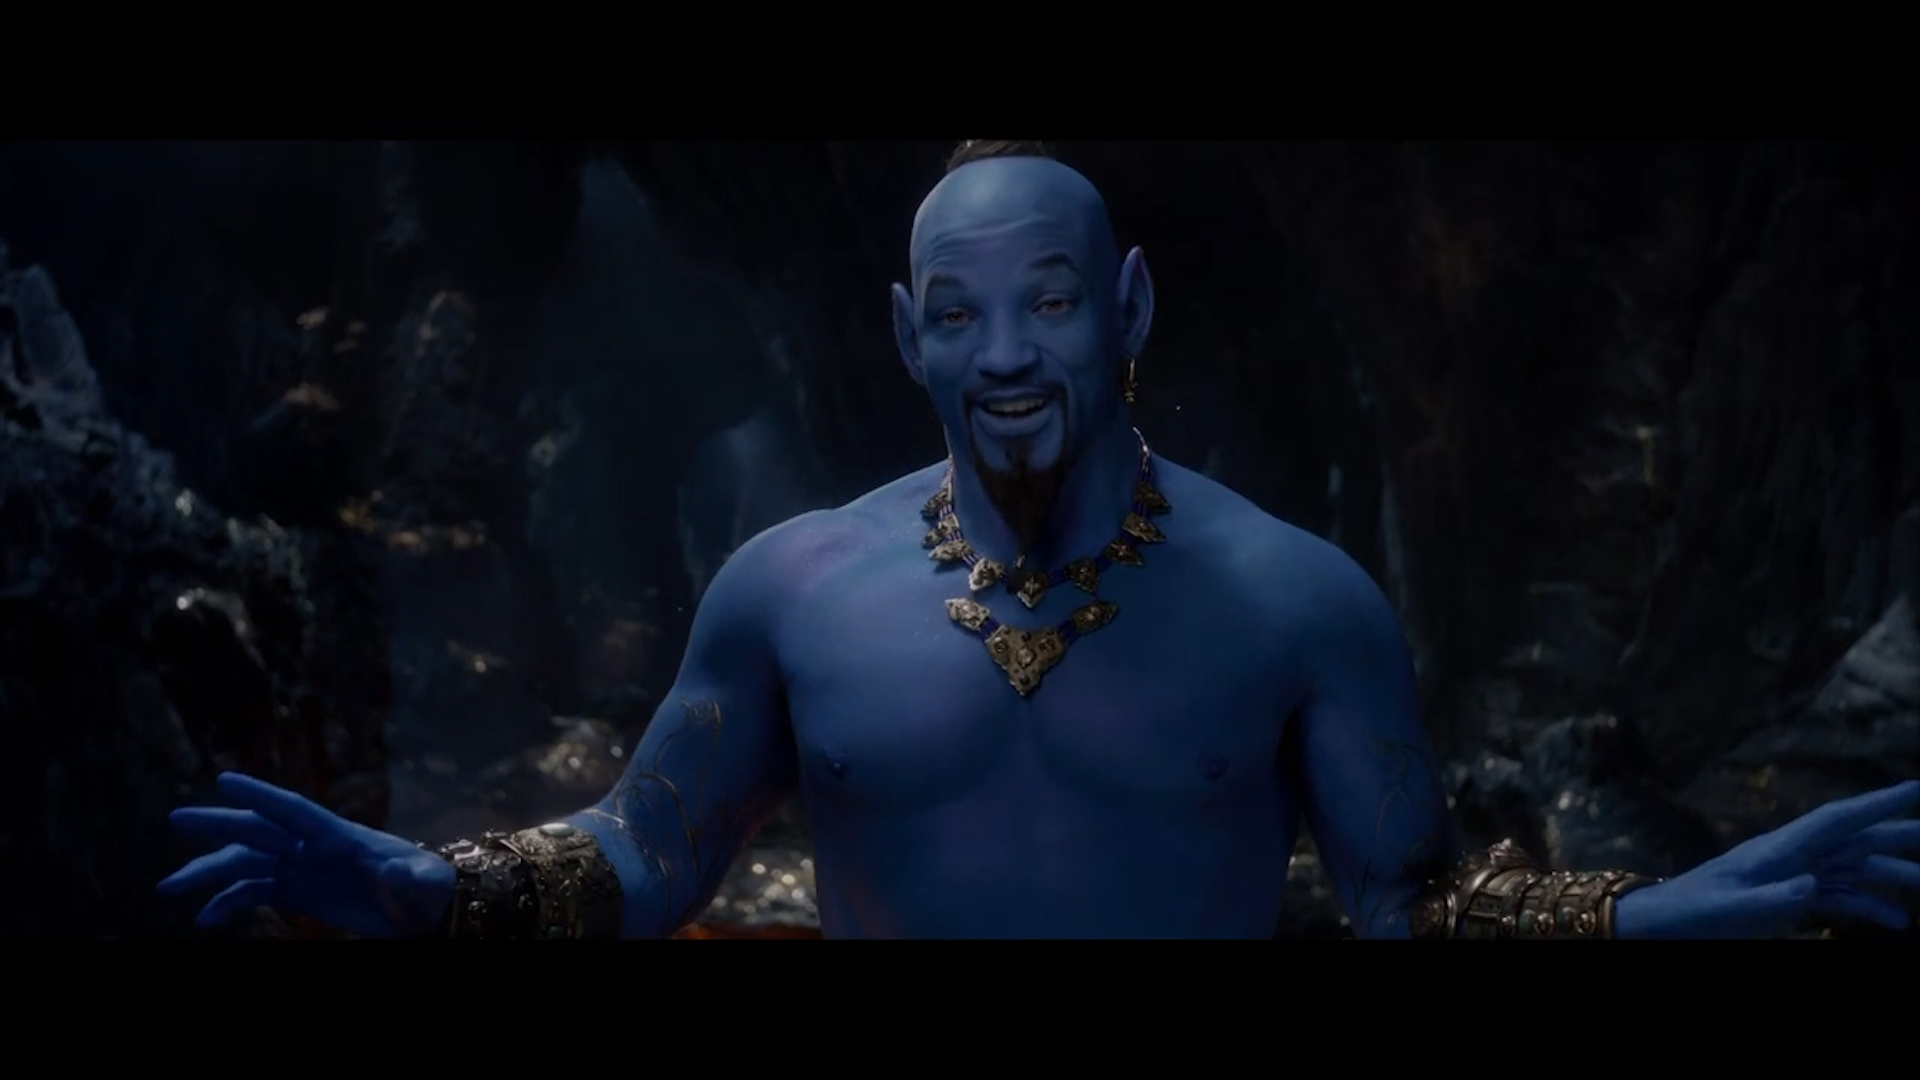 Will Smith's 'Aladdin' genie faces Twitter backlash